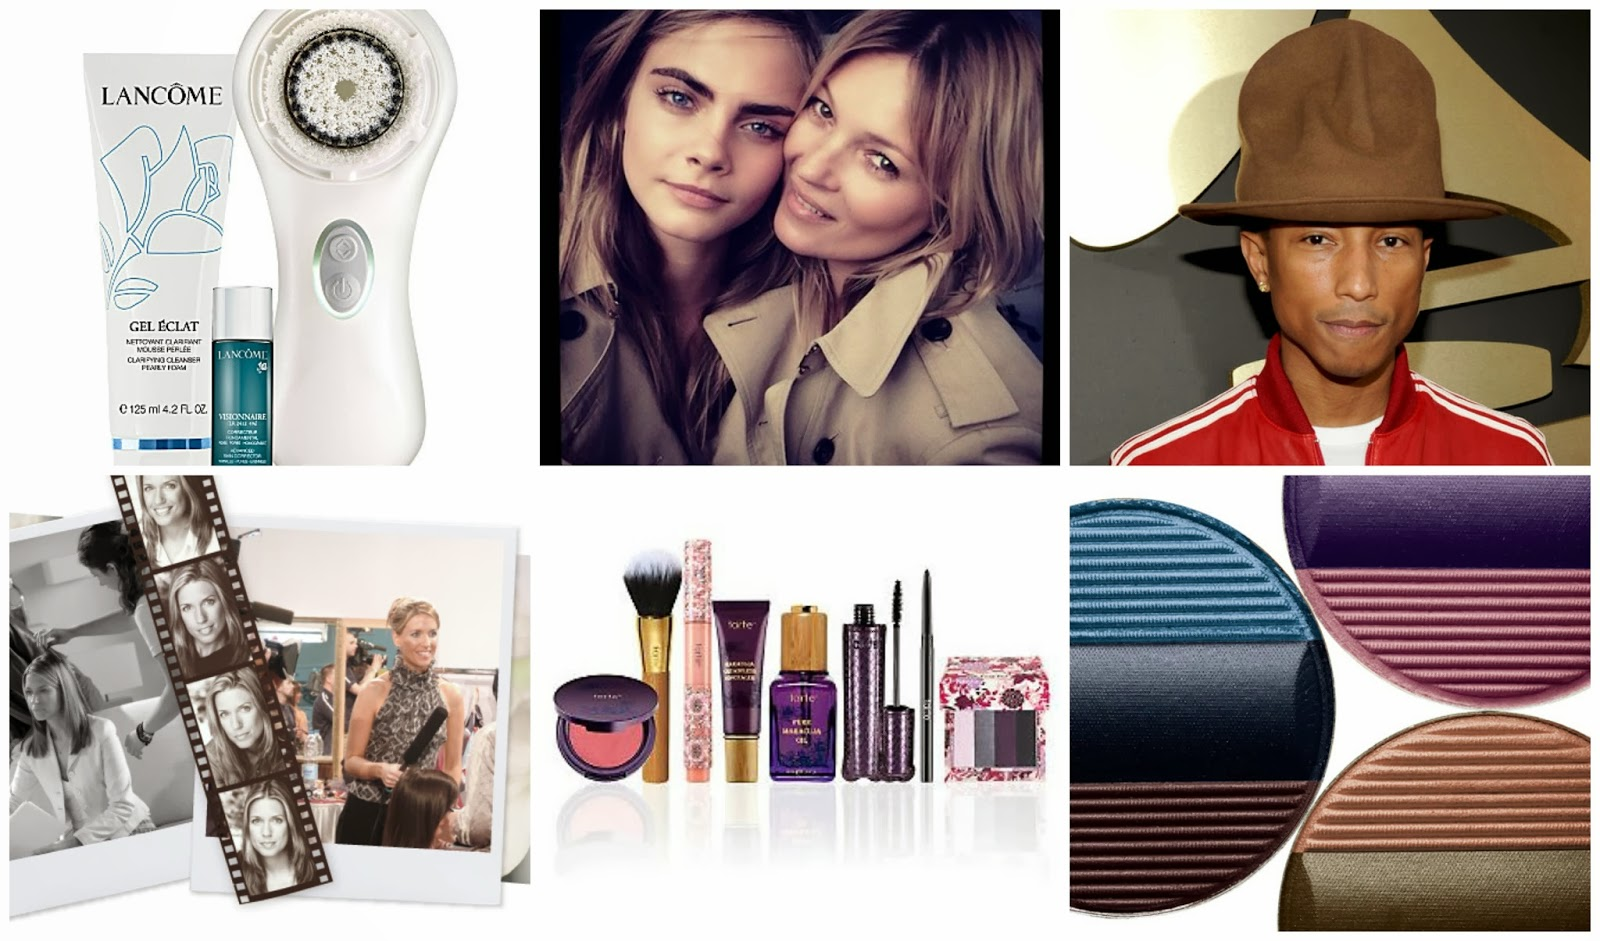 The Daily Beauty Report (12.03.14)